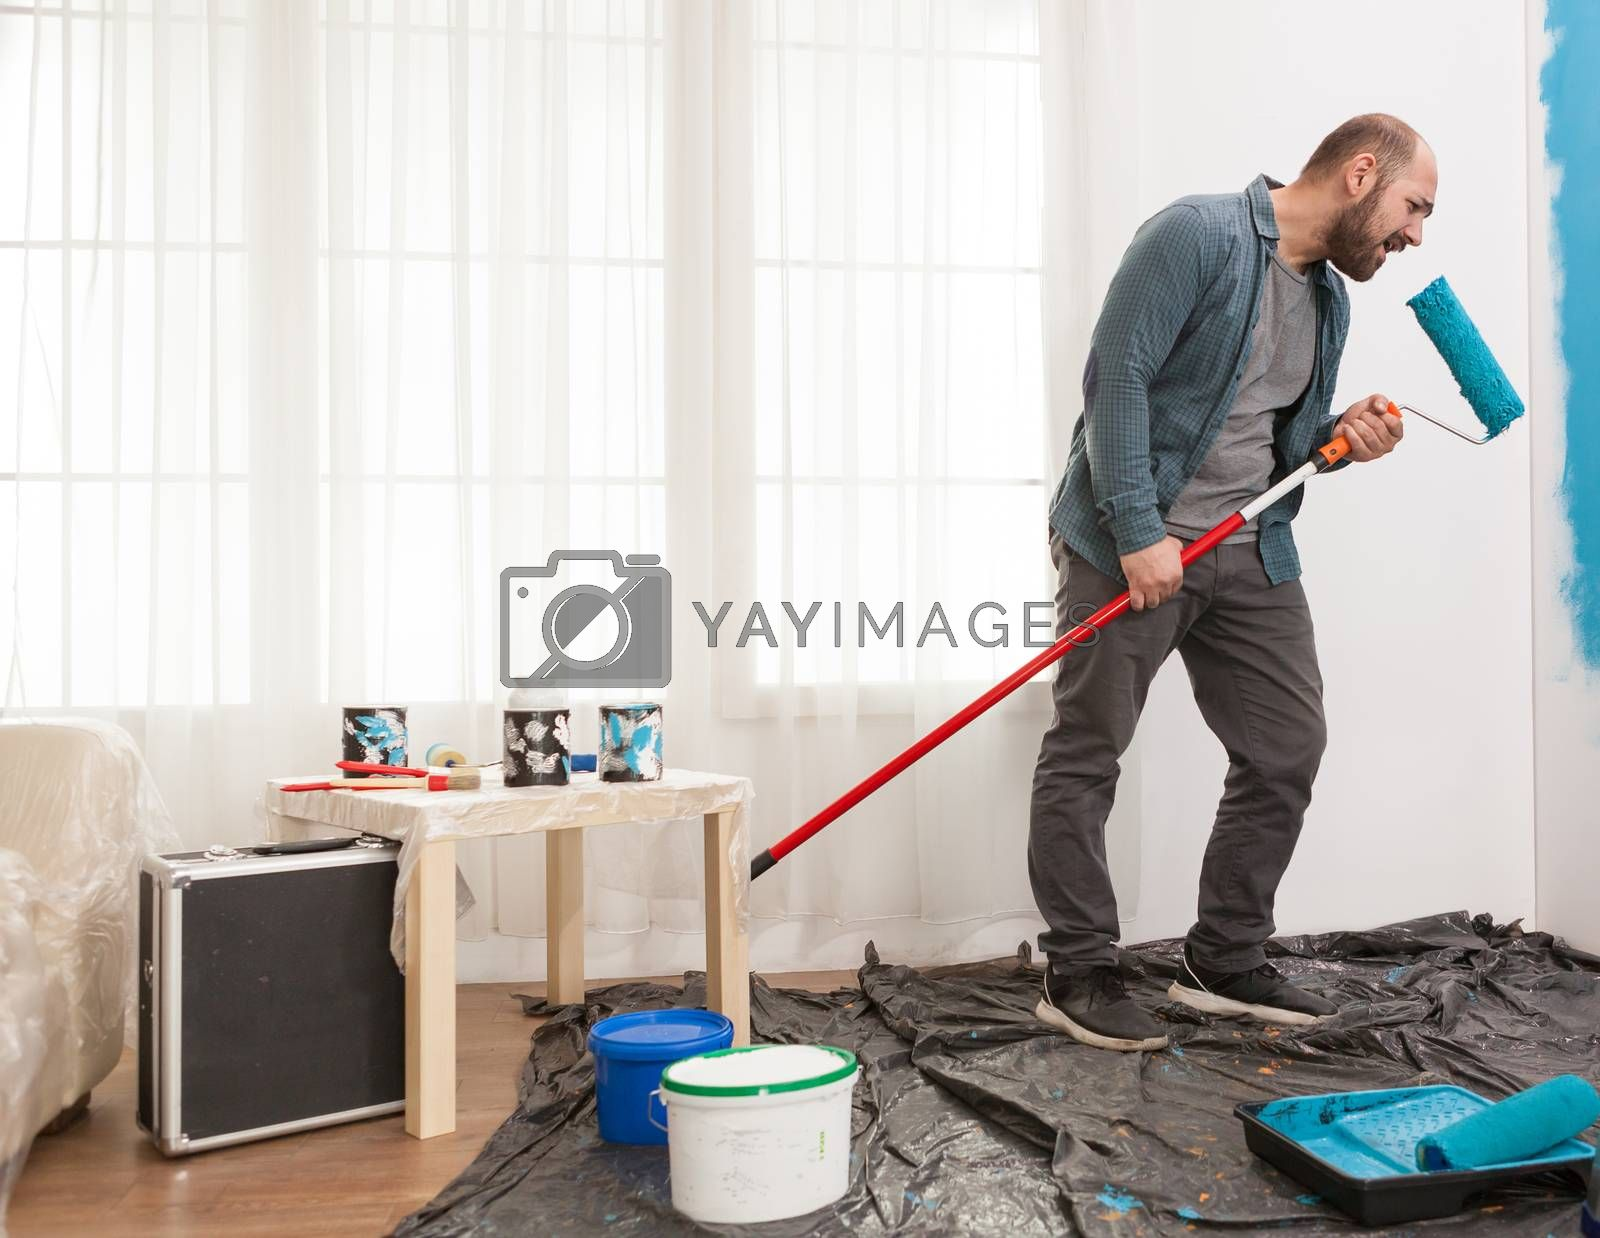 Happy husband singing at a roller brush while painting a blue wall. House decoration, brush, teamwork. Home decoration and renovation in cozy apartment flat, repair and makeover